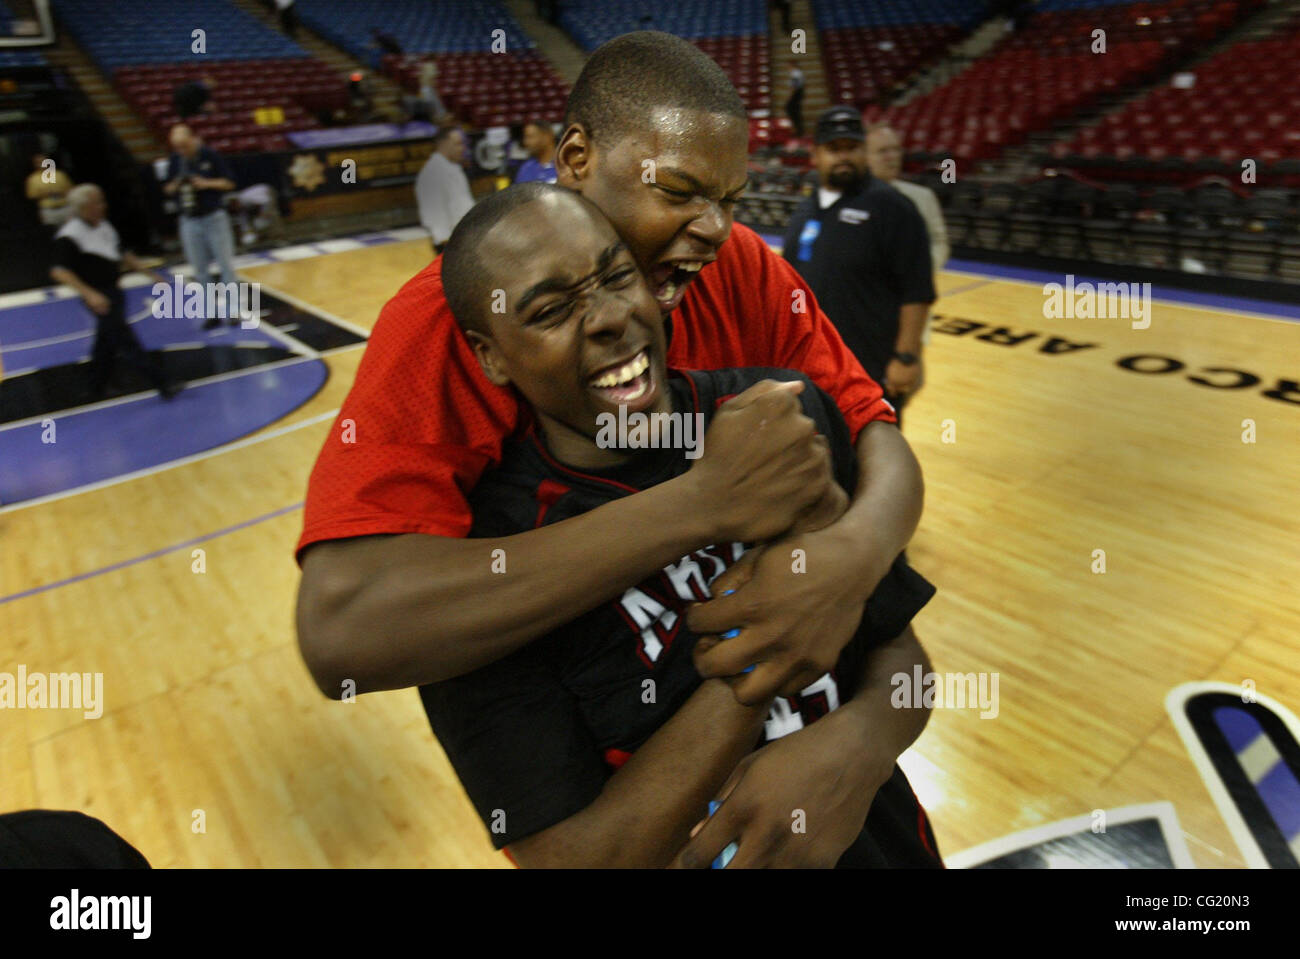 f5871034602 James Harden Stock Photos   James Harden Stock Images - Alamy